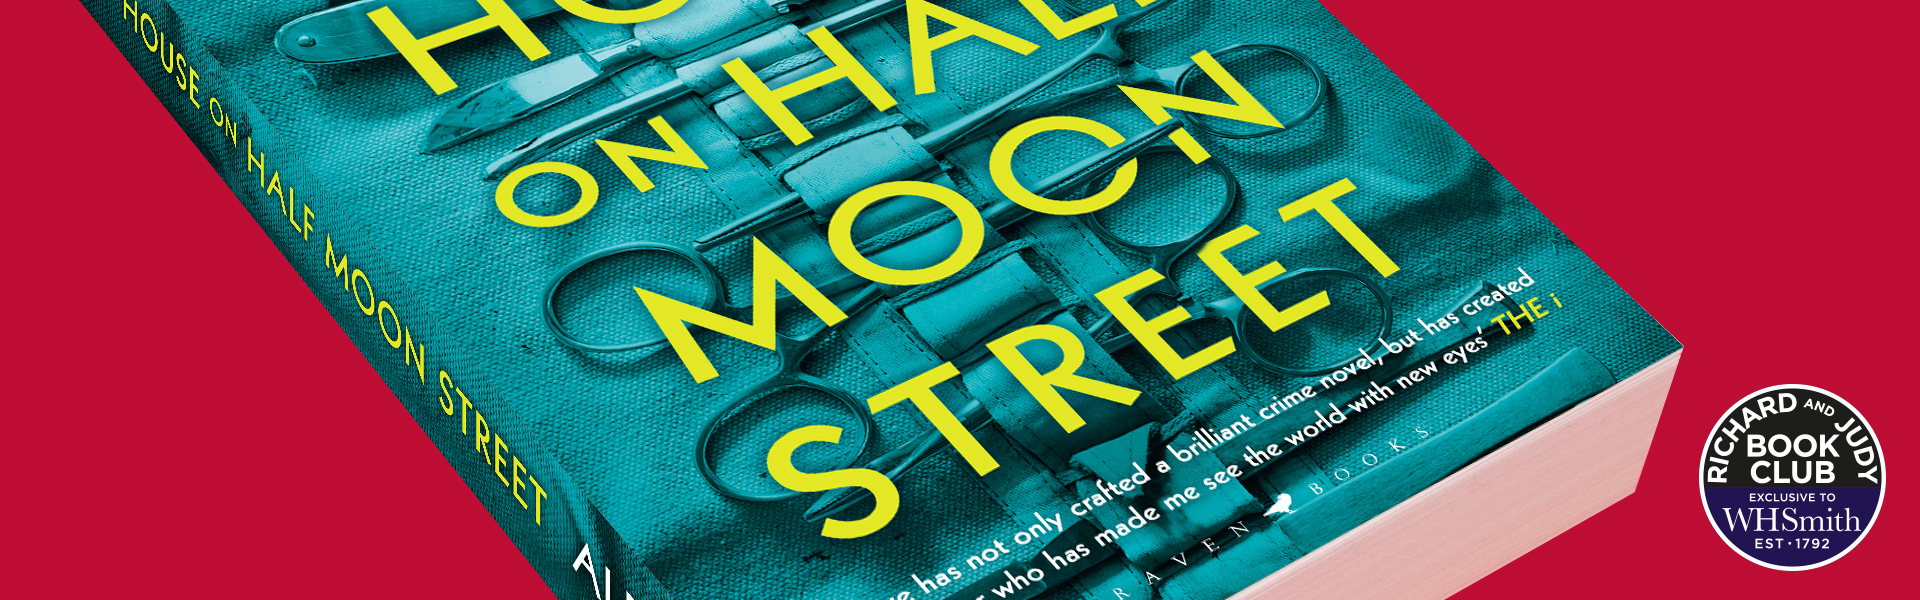 Richard And Judy Introduce The House on Half Moon Street by Alex Reeve